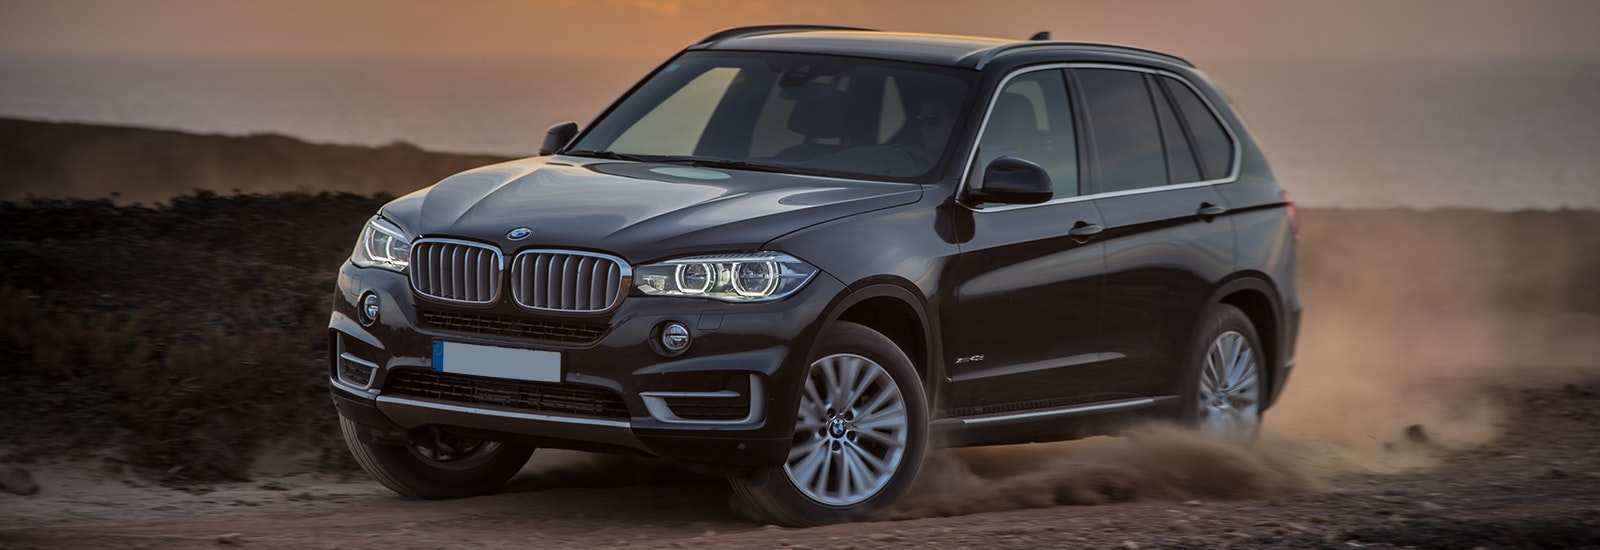 New Bmw X7 Price Specs And Release Date Carwow